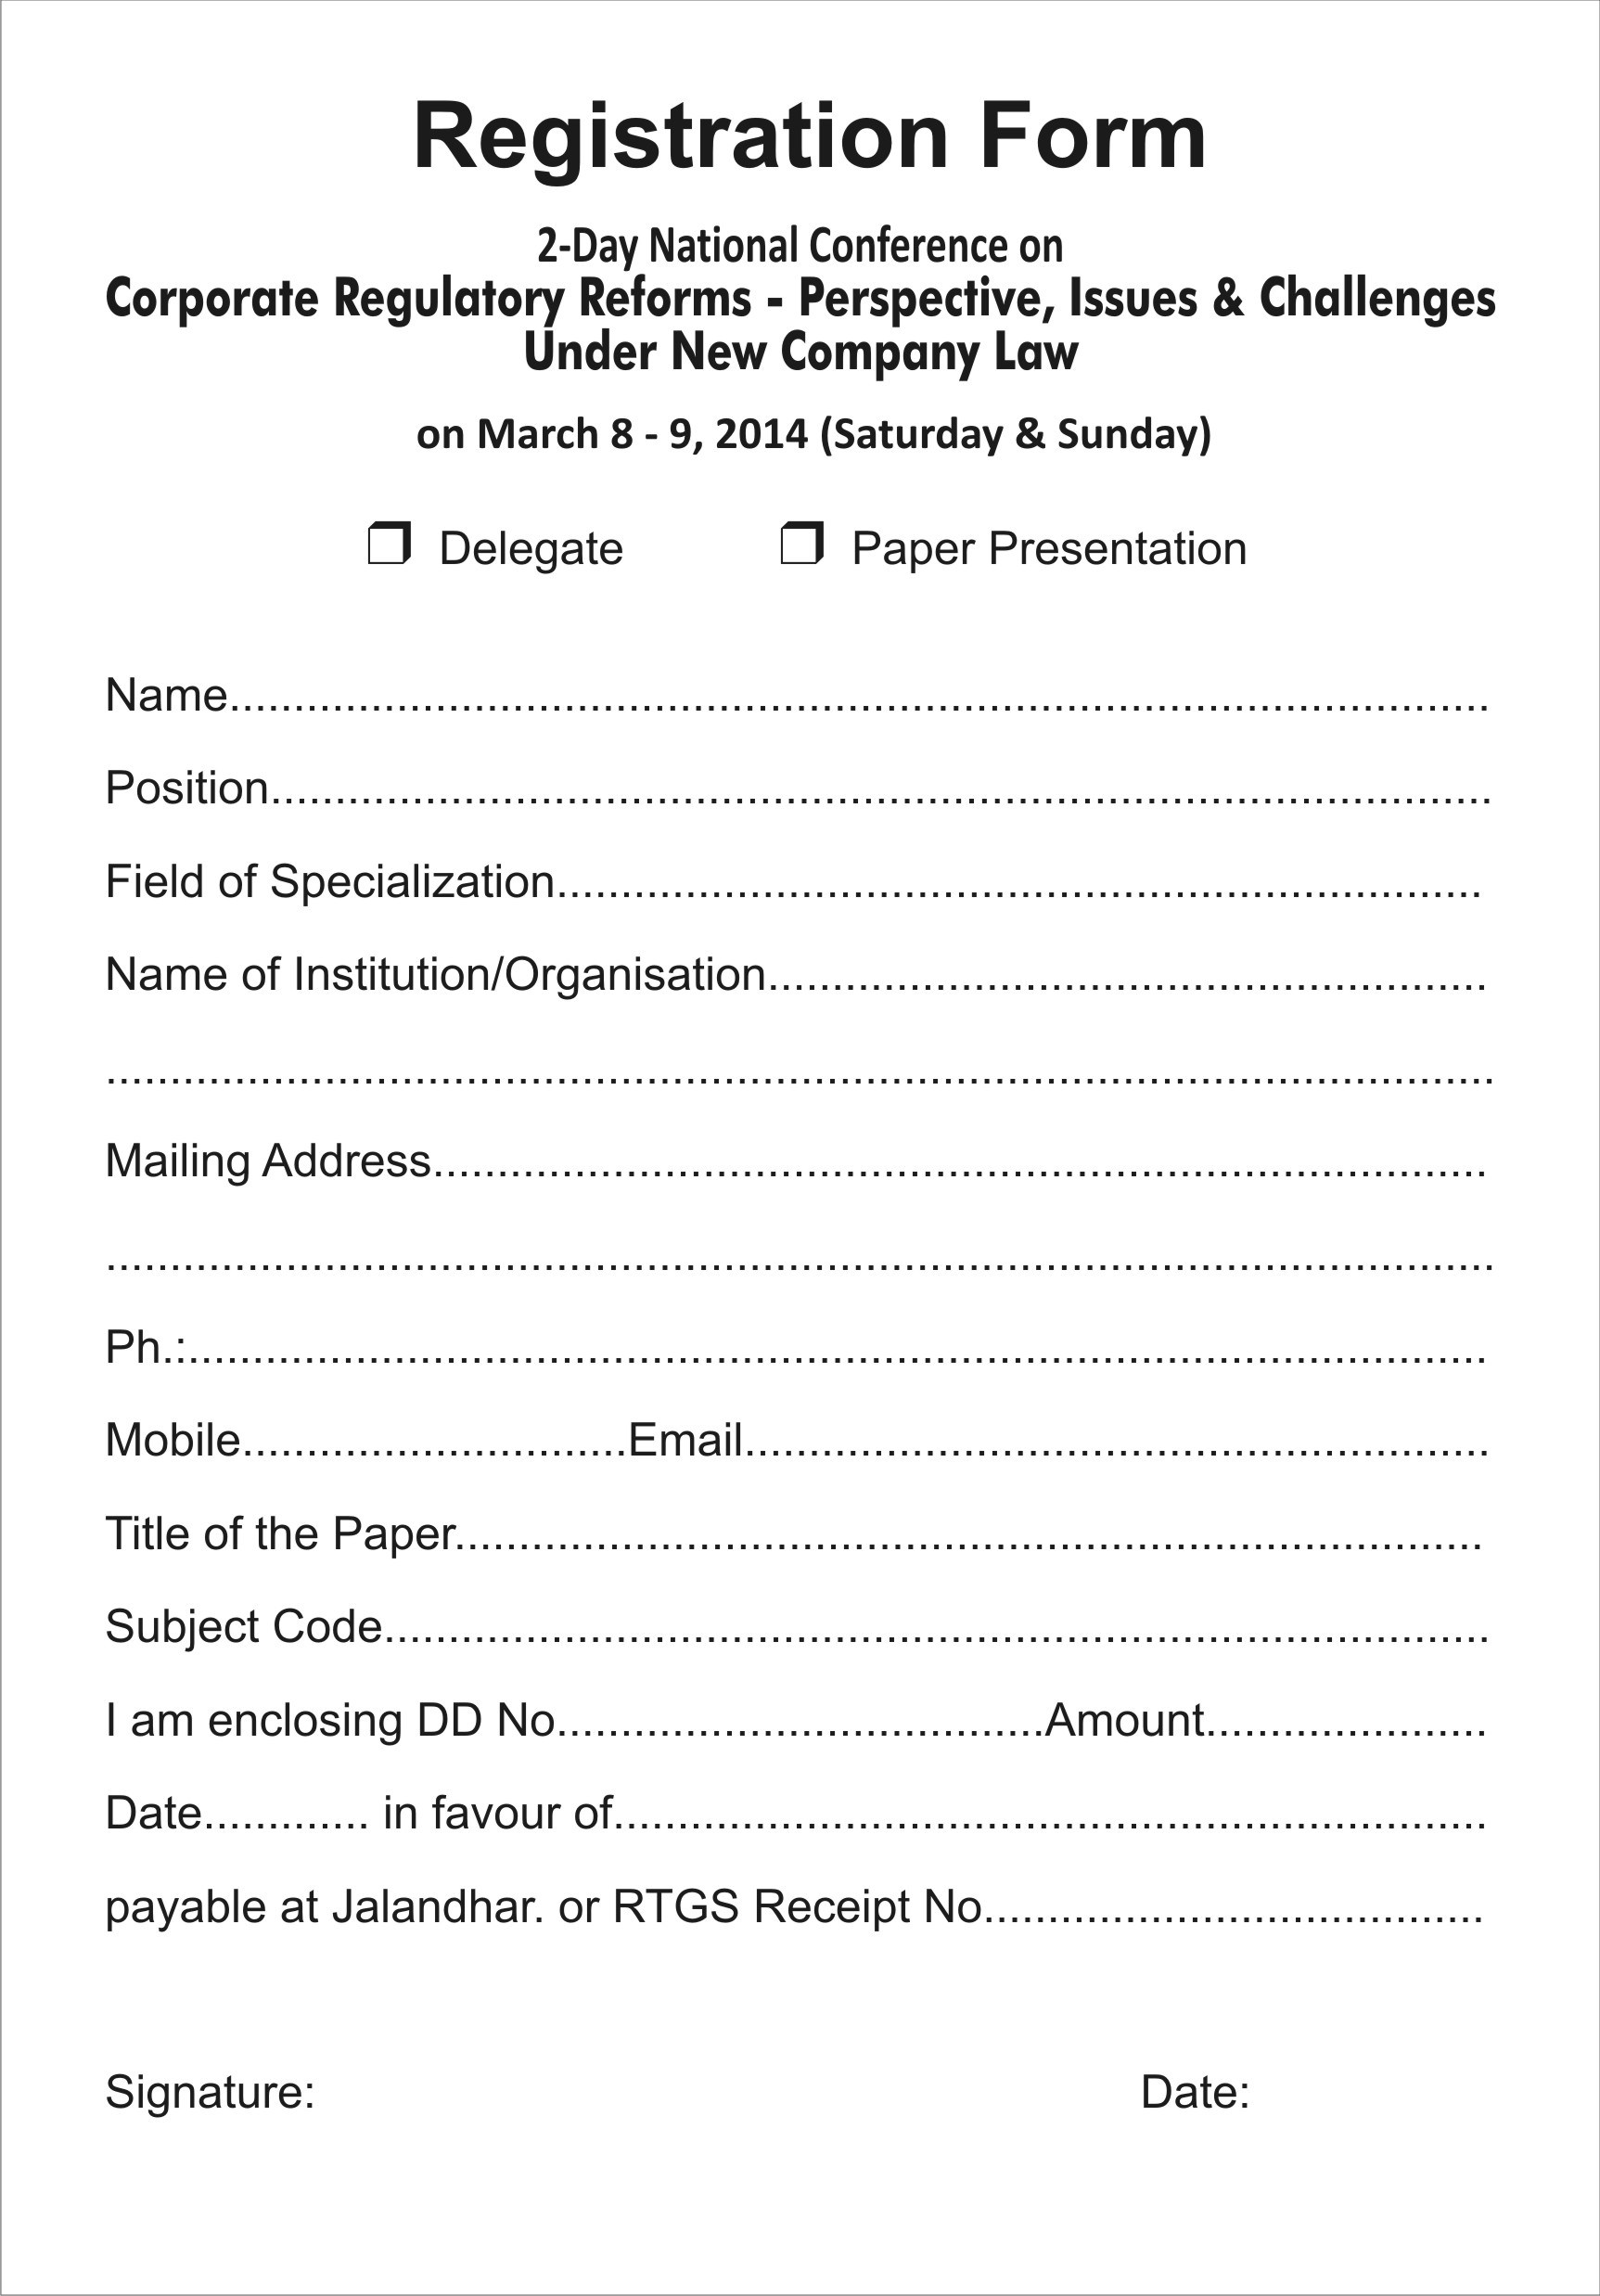 photo regarding Printable Registration Form Template Word named Printable Registration Kind Template place